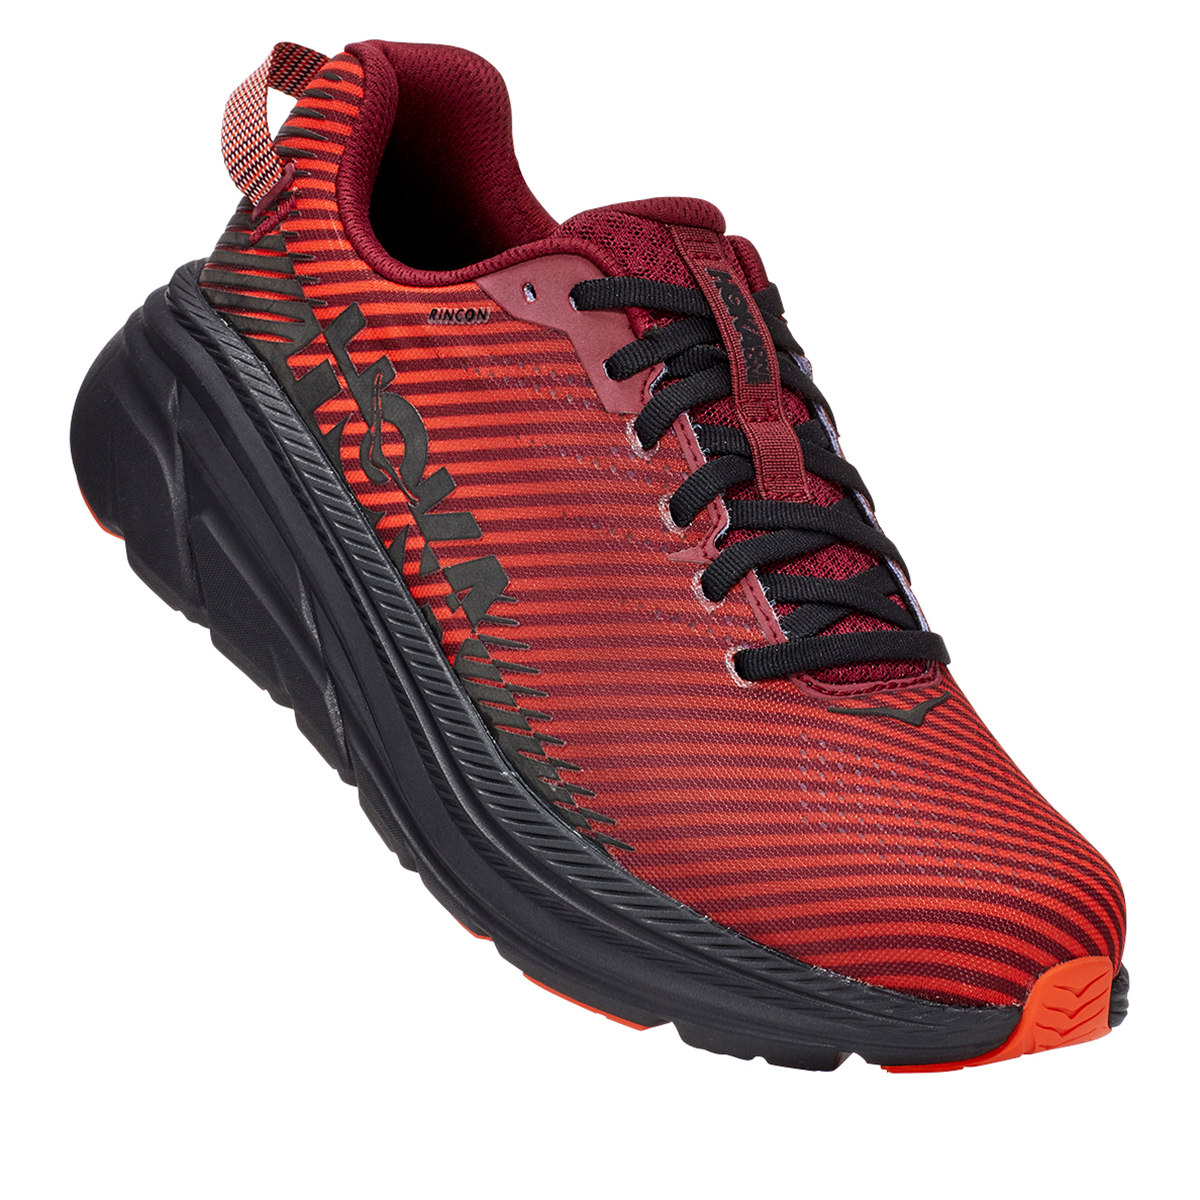 Men's Hoka One One Rincon 2 Running Shoe - Color: Cordovan/Anthracite - Size: 7 - Width: Regular, Cordovan/Anthracite, large, image 4